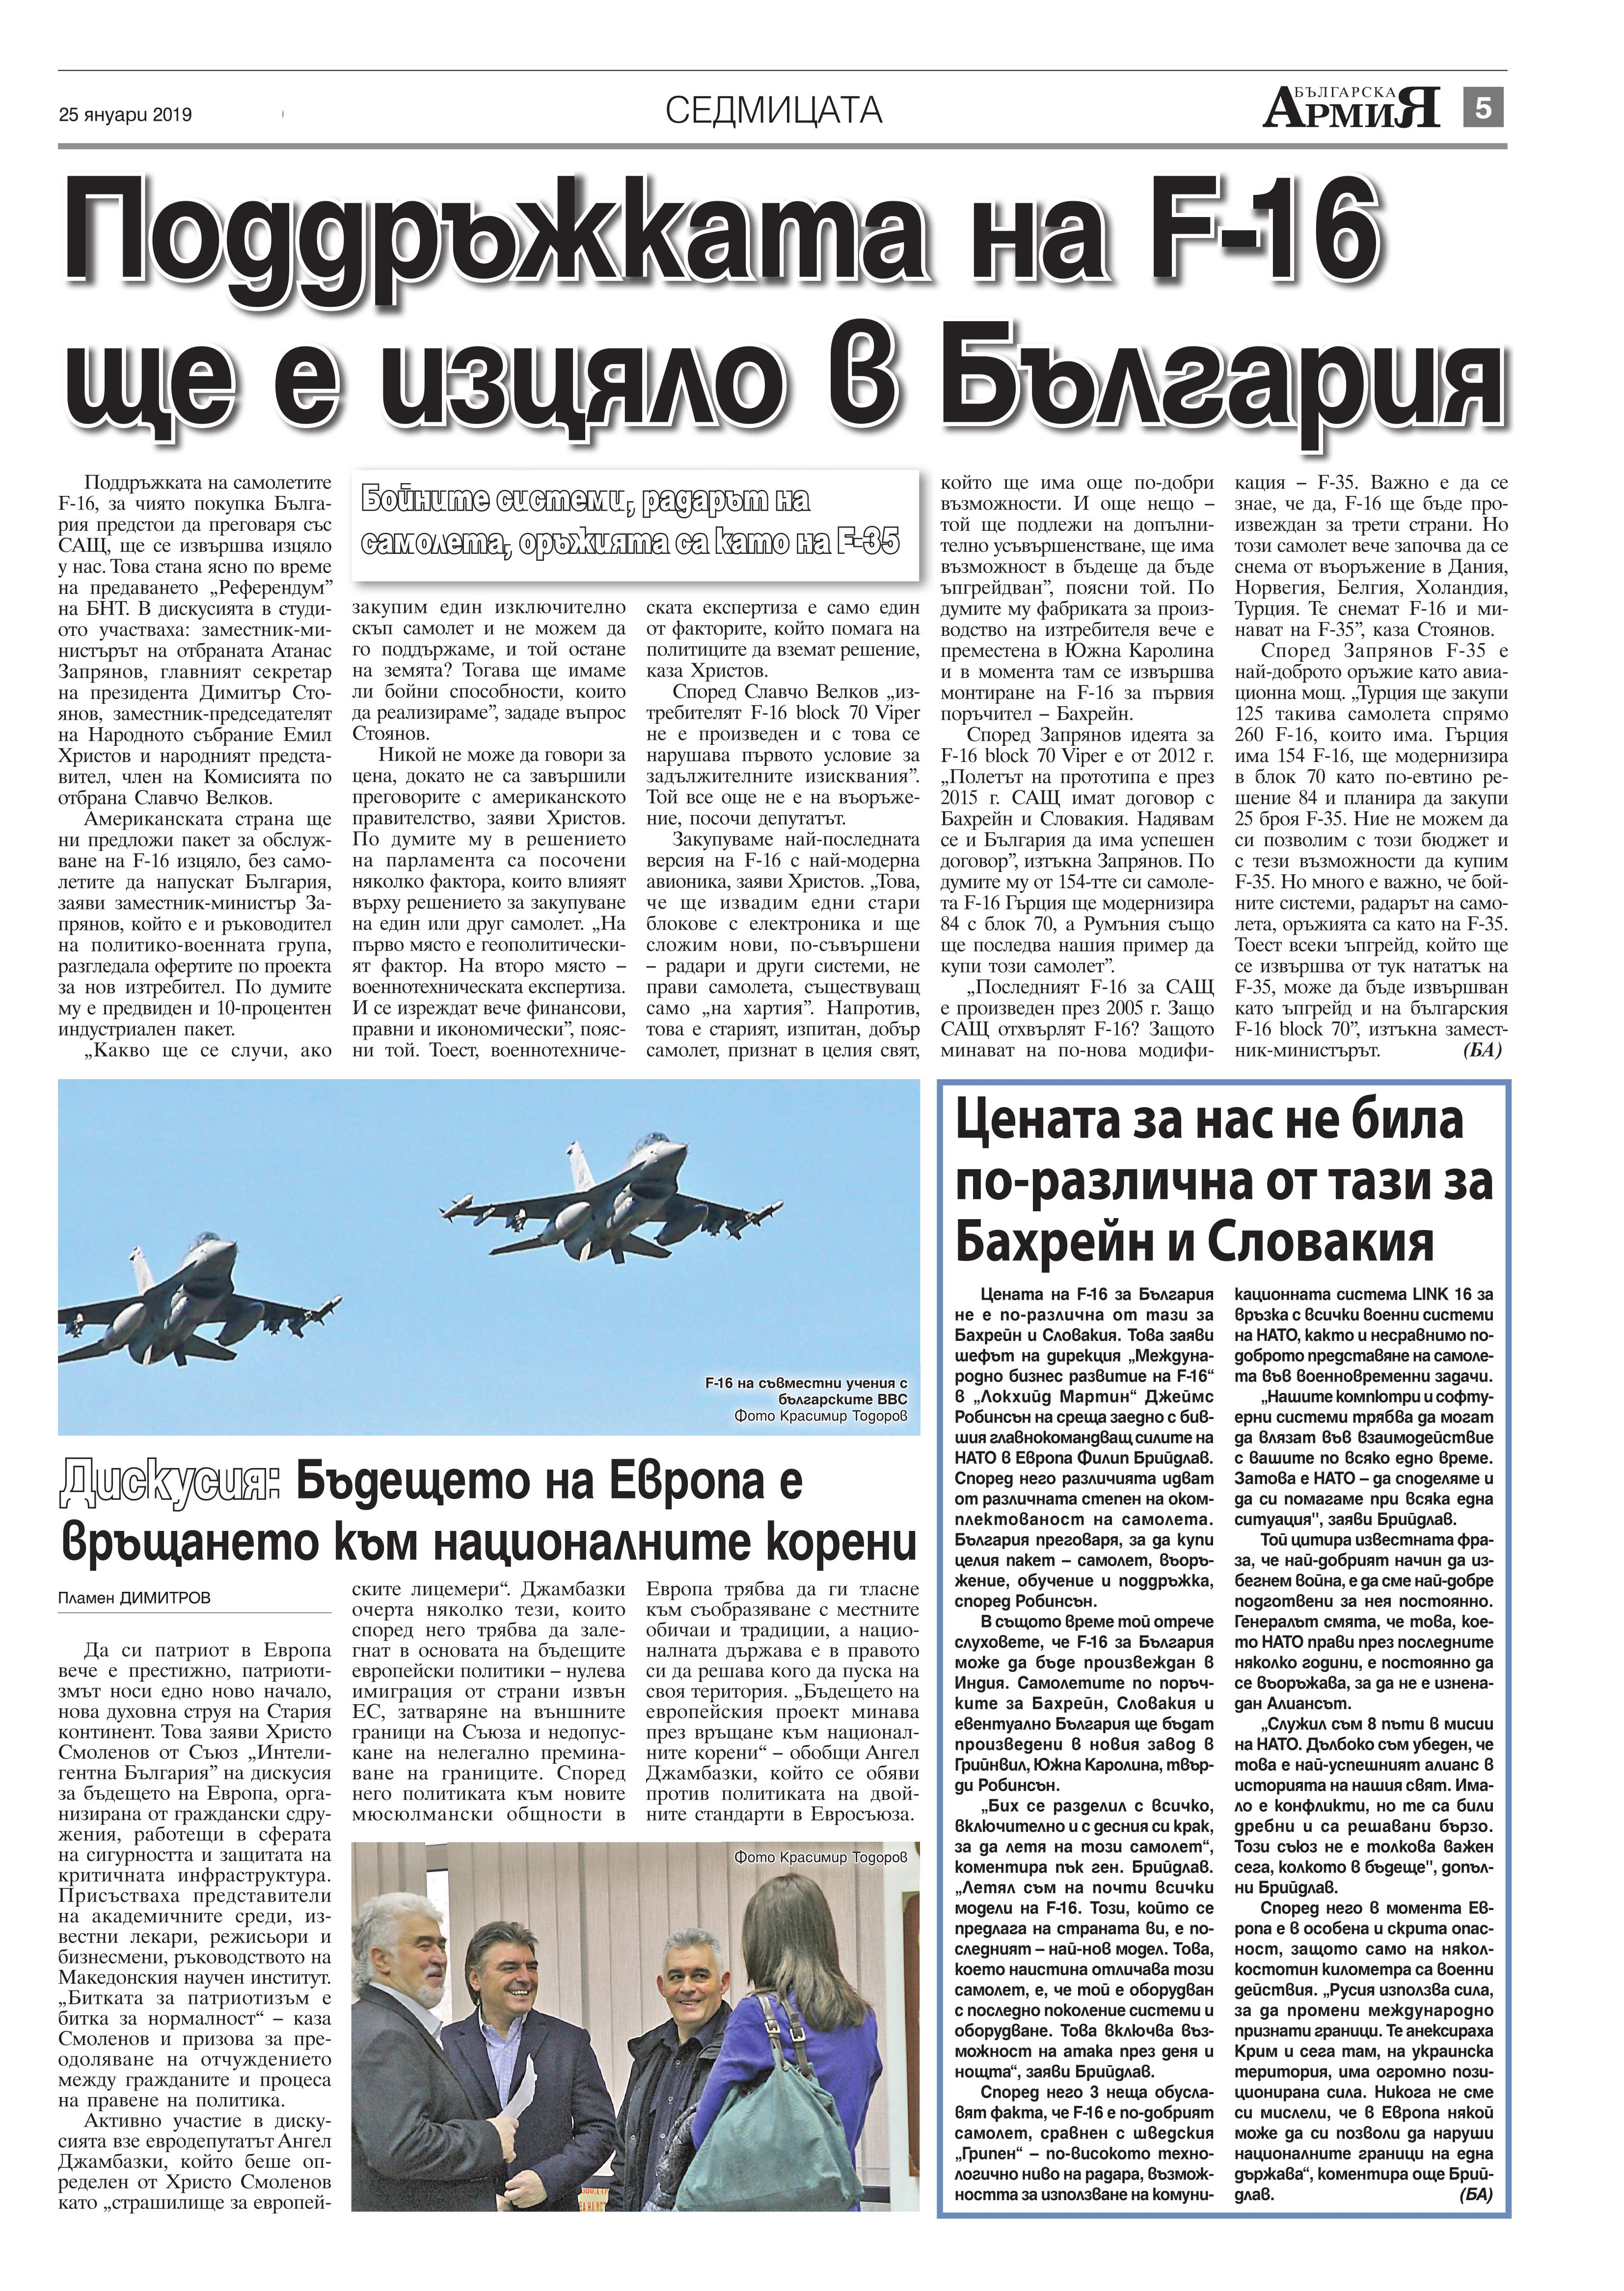 https://armymedia.bg/wp-content/uploads/2015/06/05.page1_-78.jpg